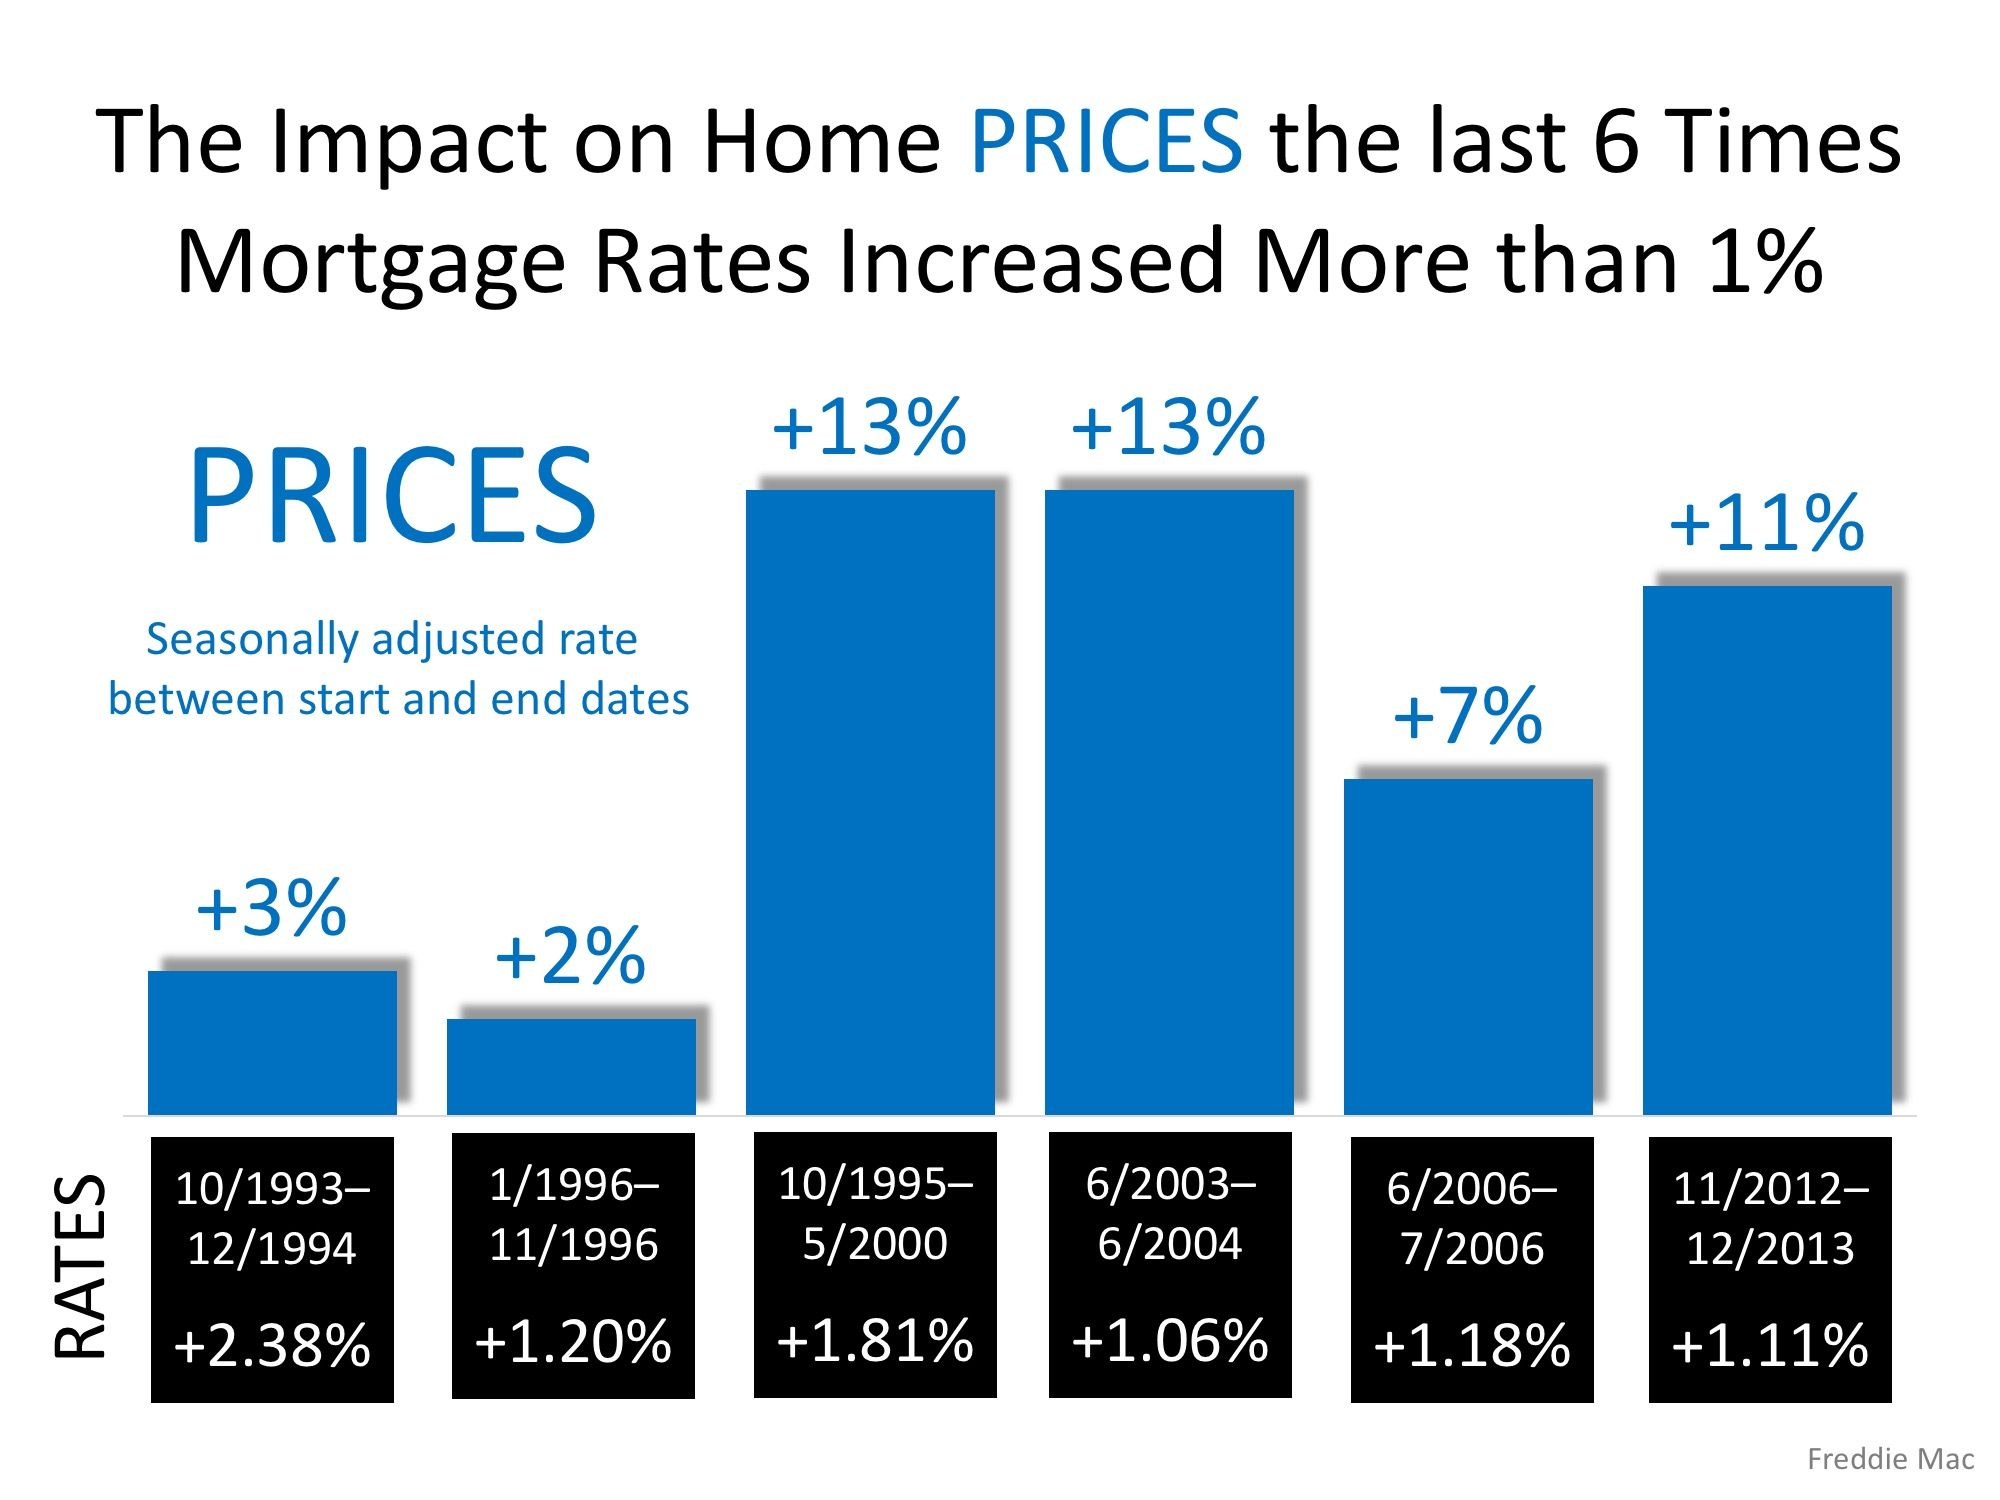 Freddie Mac Rising Mortgage Rates Do Not Lead To Falling Home